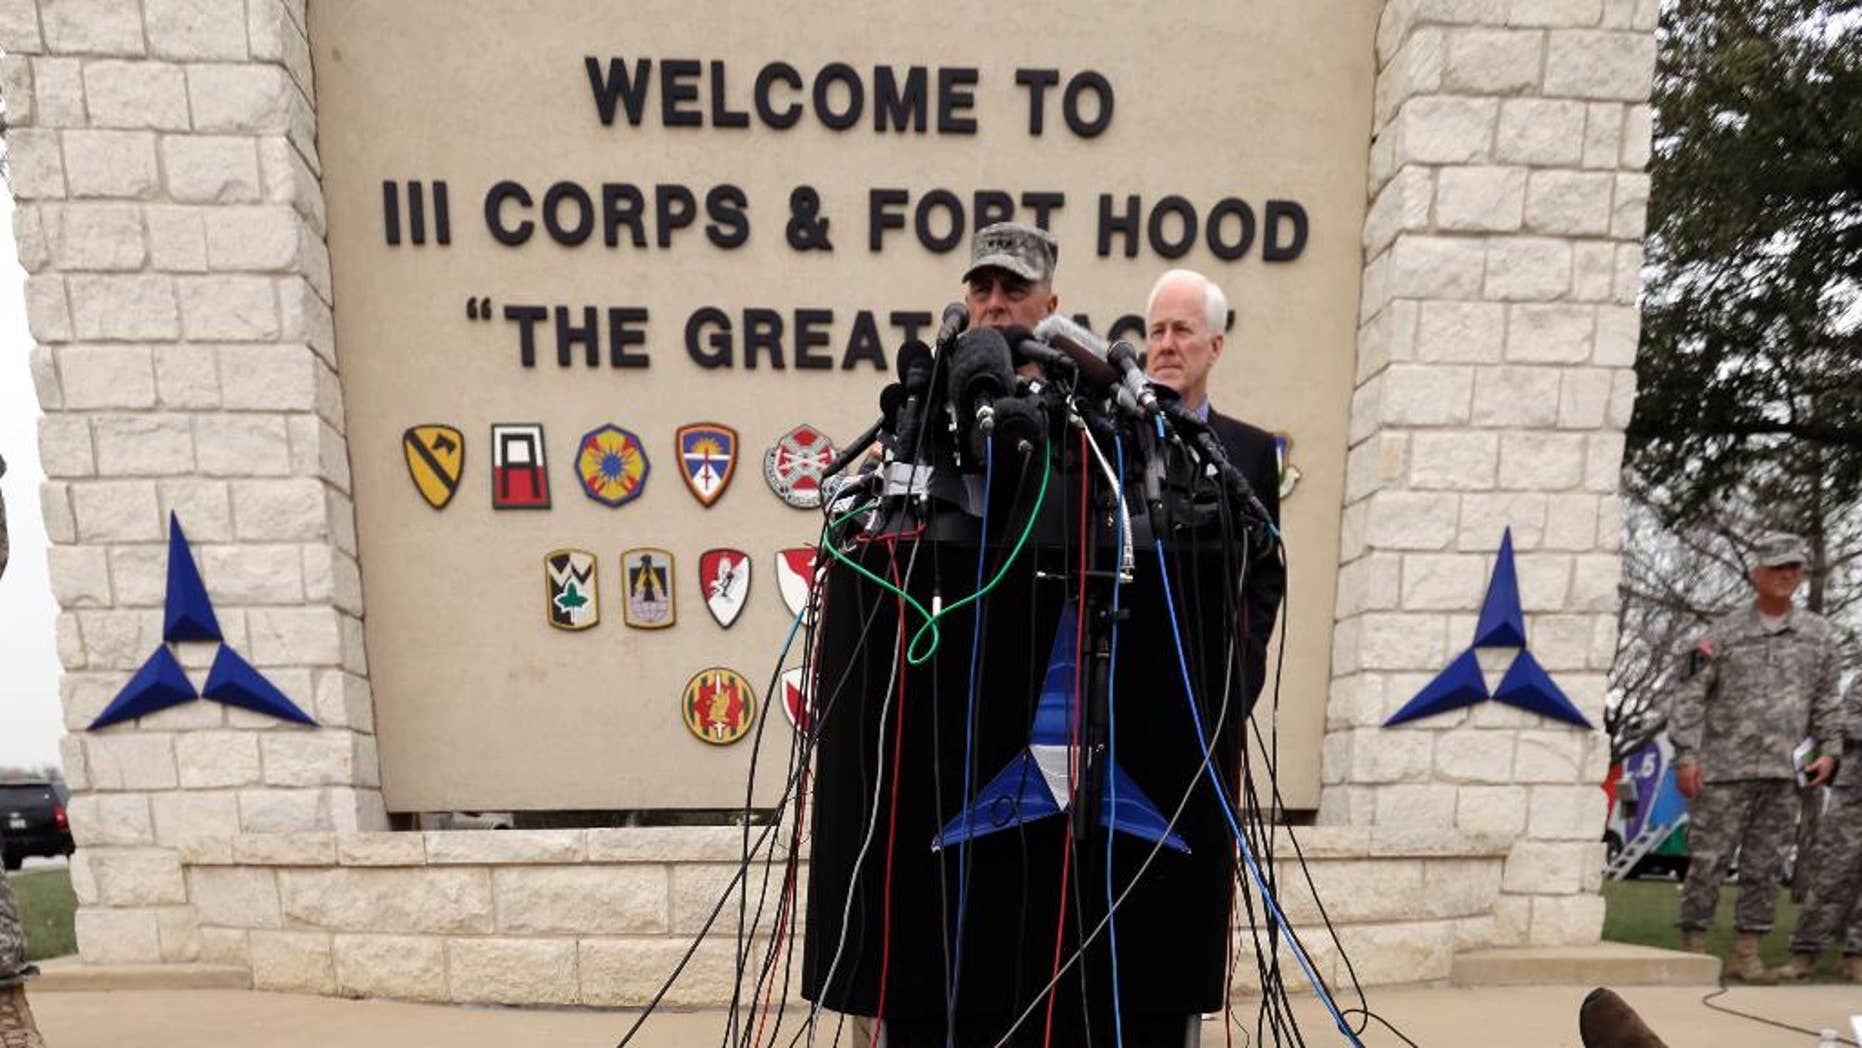 Lt. Gen. Mark Milley, left,and U.S. Sen. John Cornyn, right, talk to the media near Fort Hood's main gate, Thursday, April 3, 2014, in Fort Hood, Texas. A soldier opened fire Wednesday on fellow service members at the Fort Hood military base, killing three people and wounding 16 before committing suicide. (AP Photo/Eric Gay)